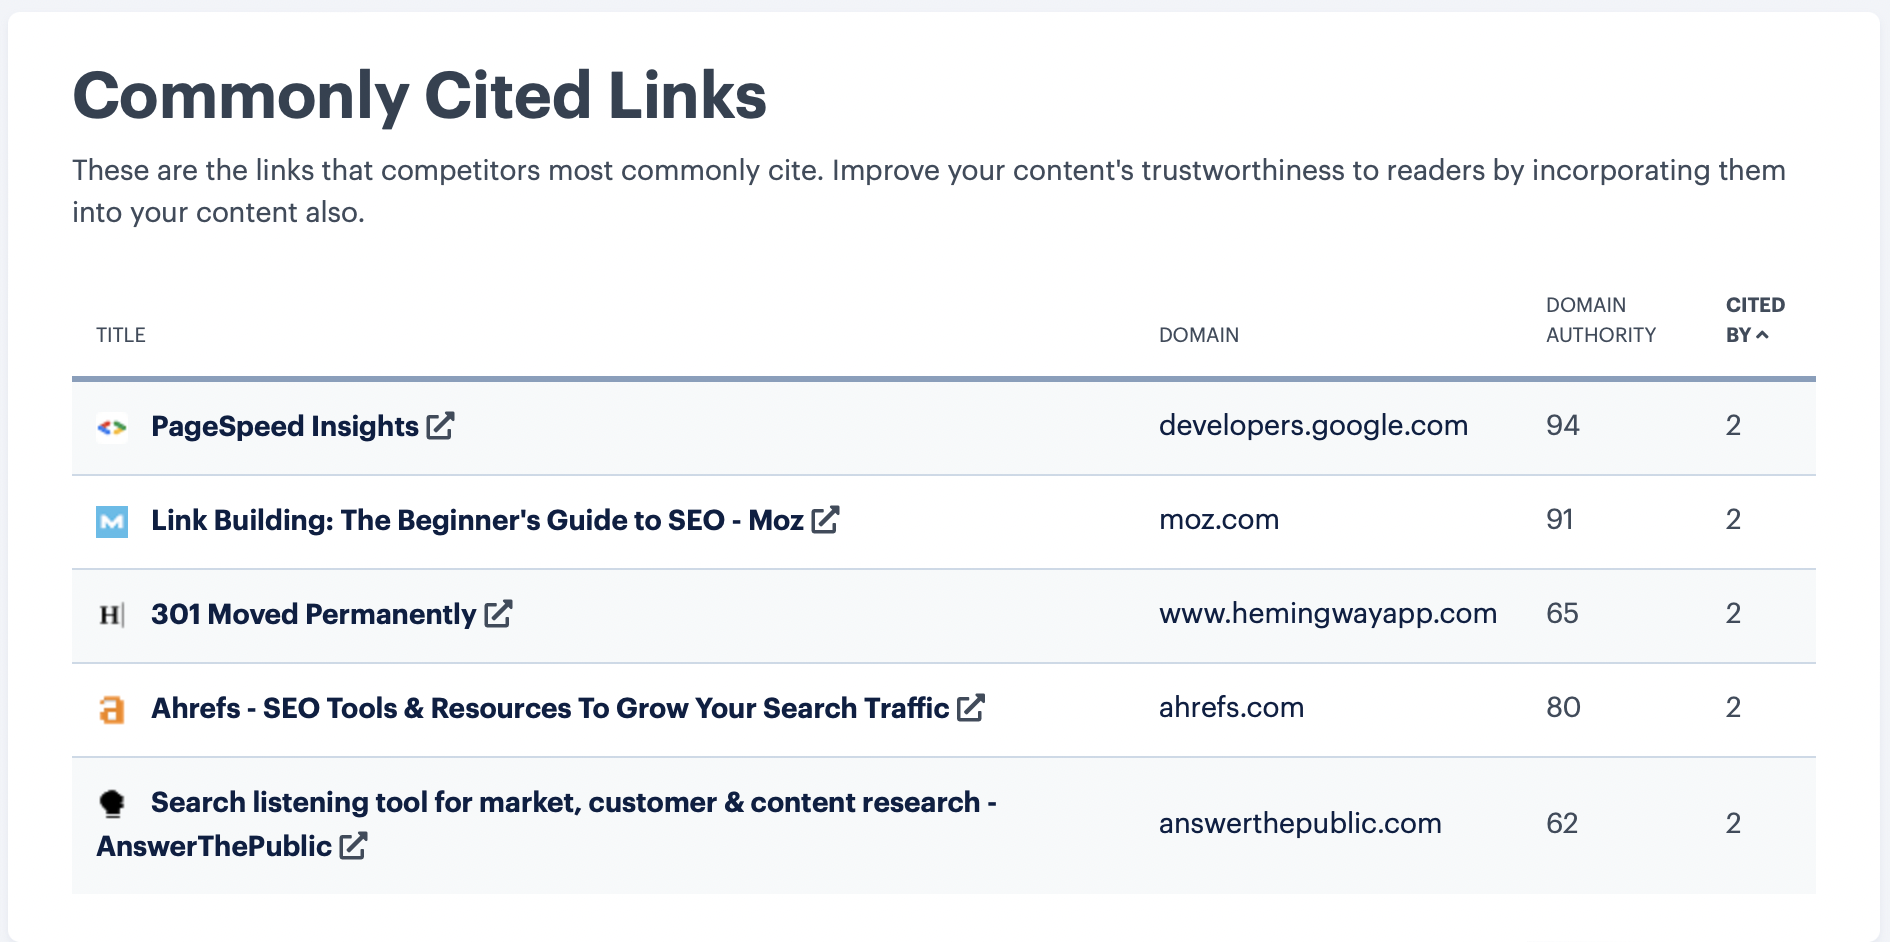 Commonly Cited Links